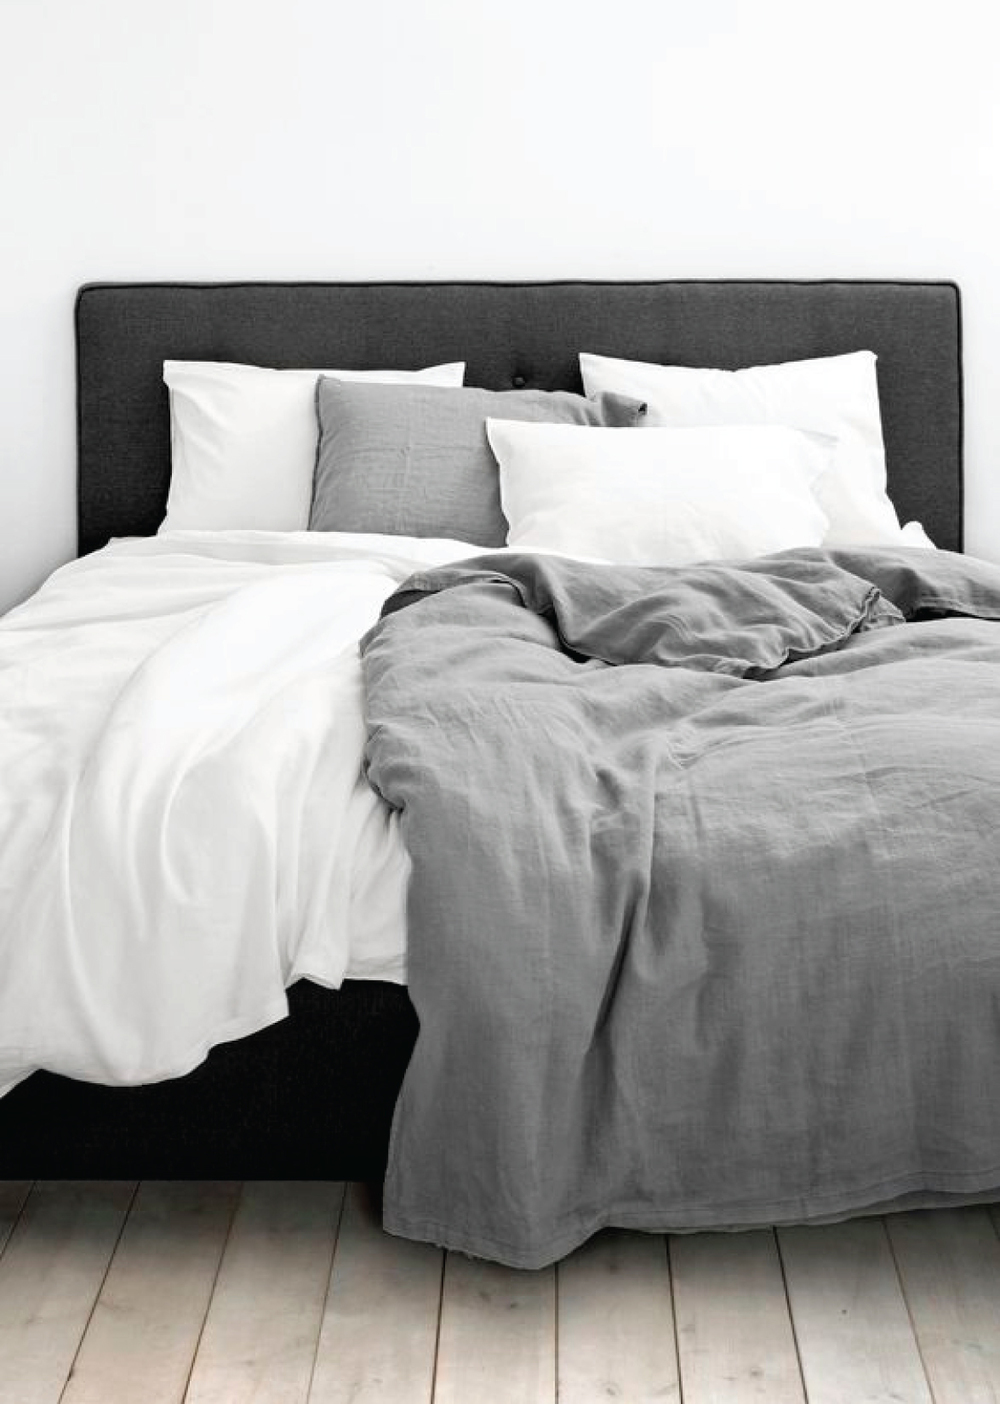 Linen Bedding Neutral Bed